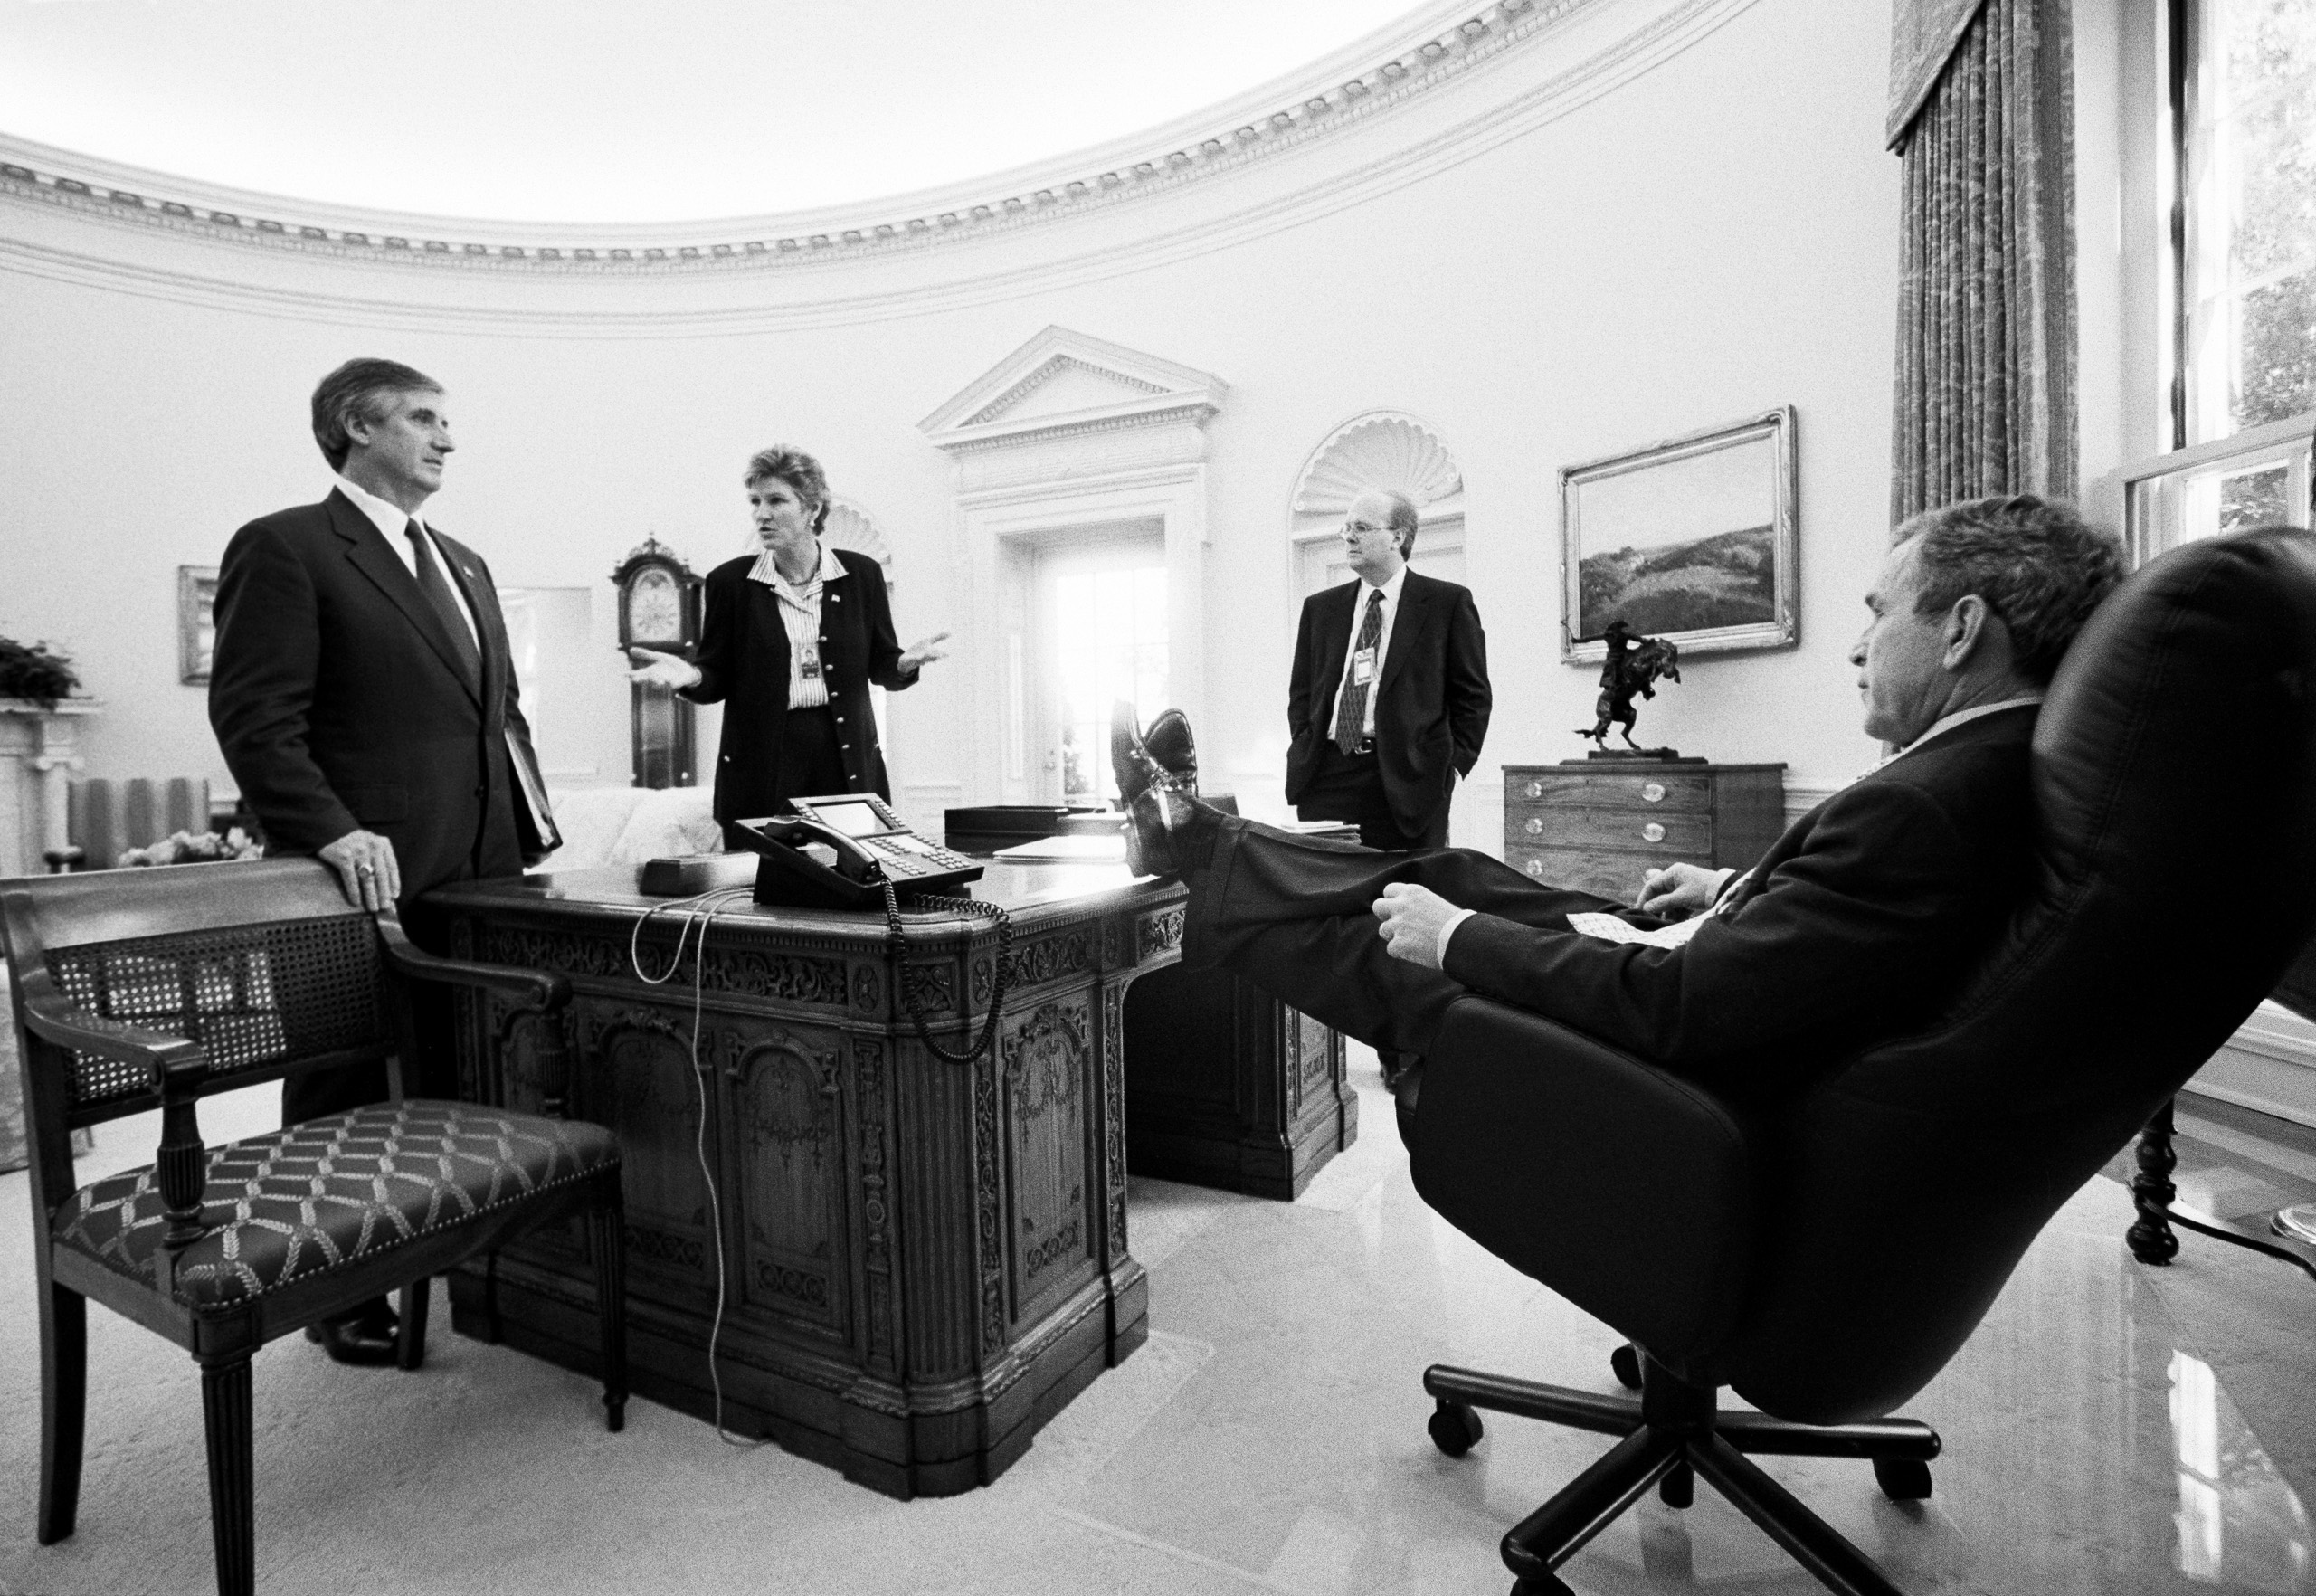 President George W. Bush meets with senior staff in the Oval Office to discuss policy. Left to right: Chief of Staff Andrew Card, Advisor Karen Hughes, and Senior Advisor to the President Karl Rove, Oct. 25, 2001.